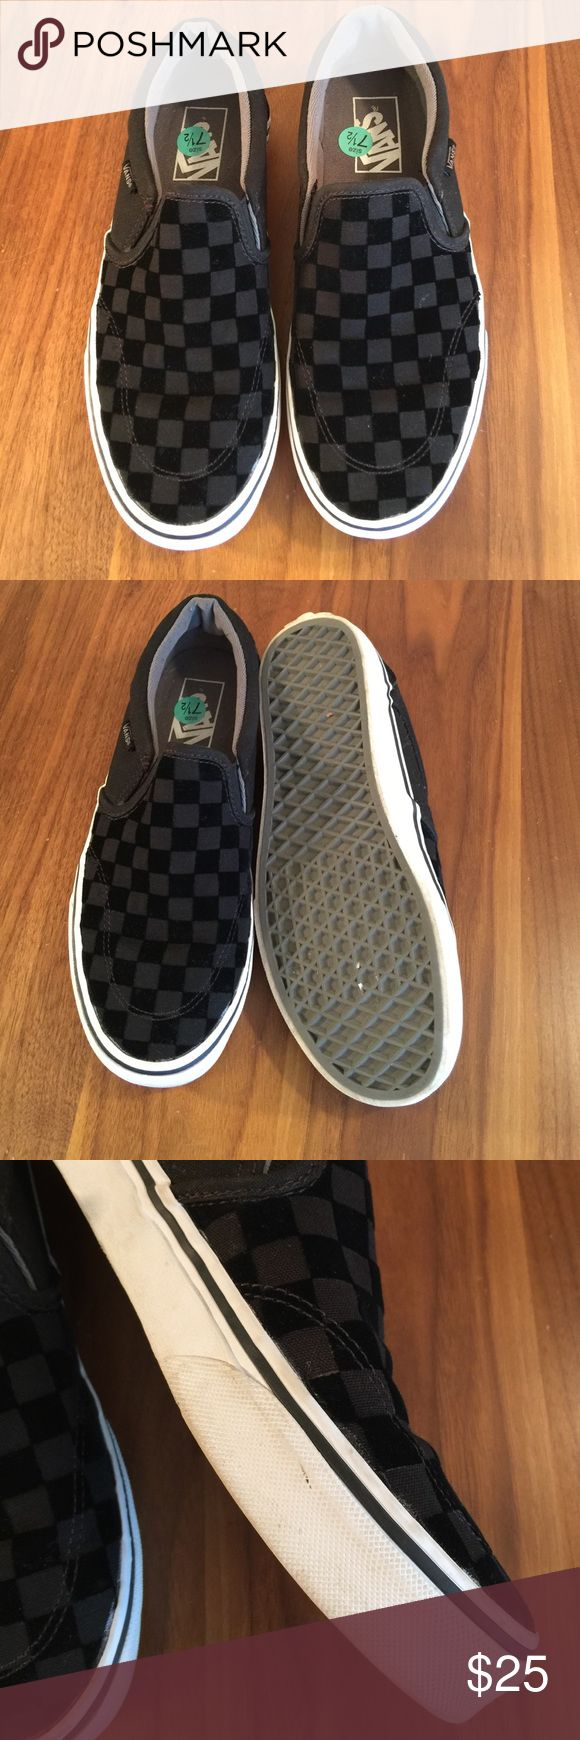 Vans Checkerboard Sneakers Black and grey checkerboard slip on sneakers. Light smudges on rubber outsole. Vans Shoes Sneakers